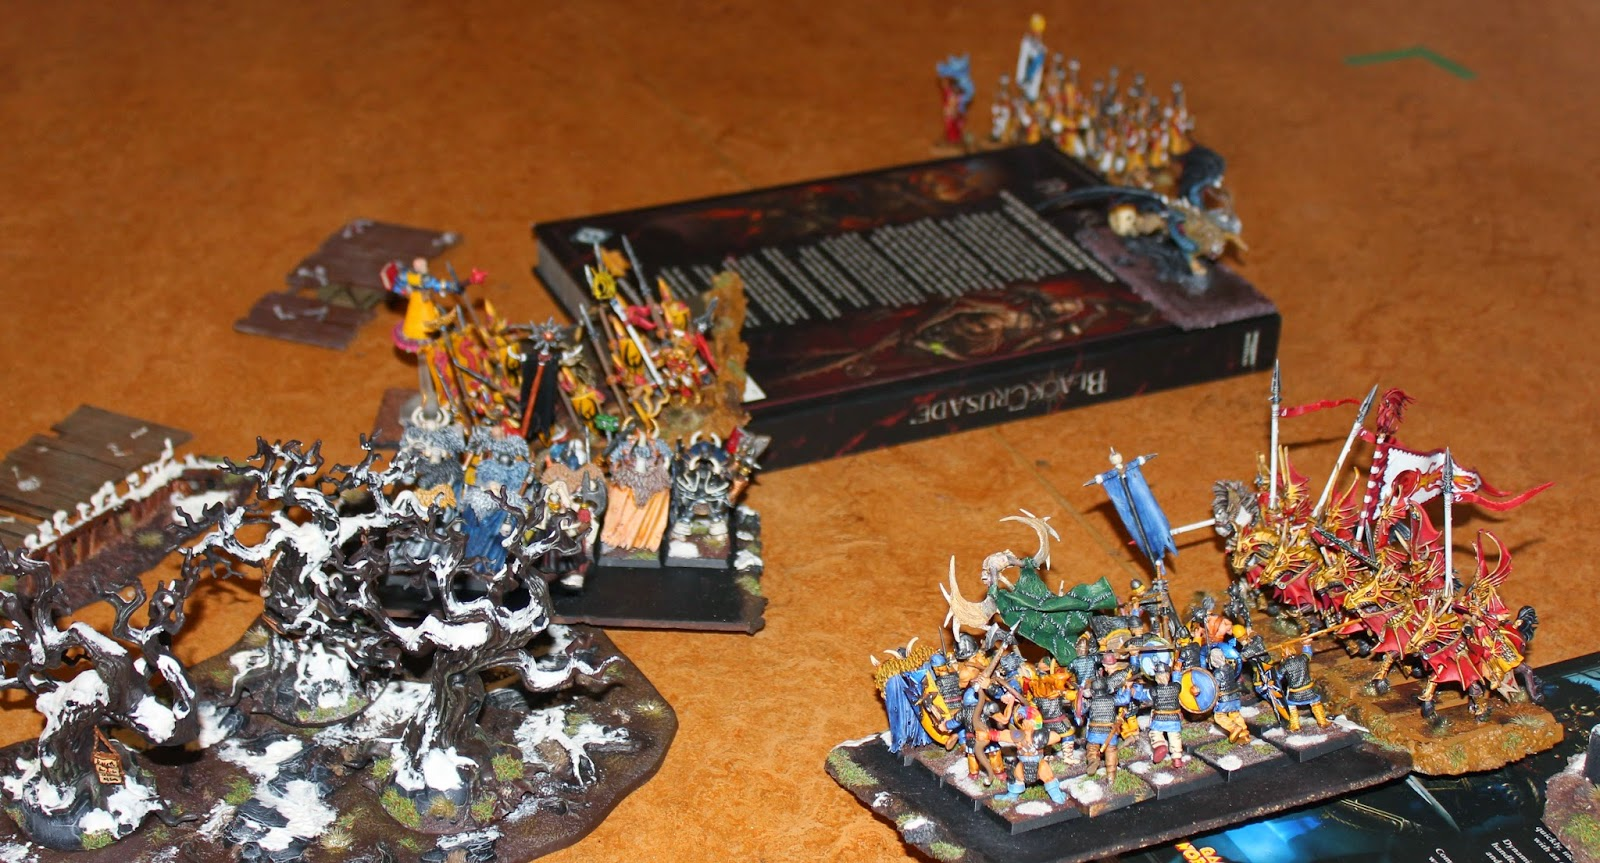 A Warhammer Fantasy Battle Report between High Elves and Warriors of Chaos.